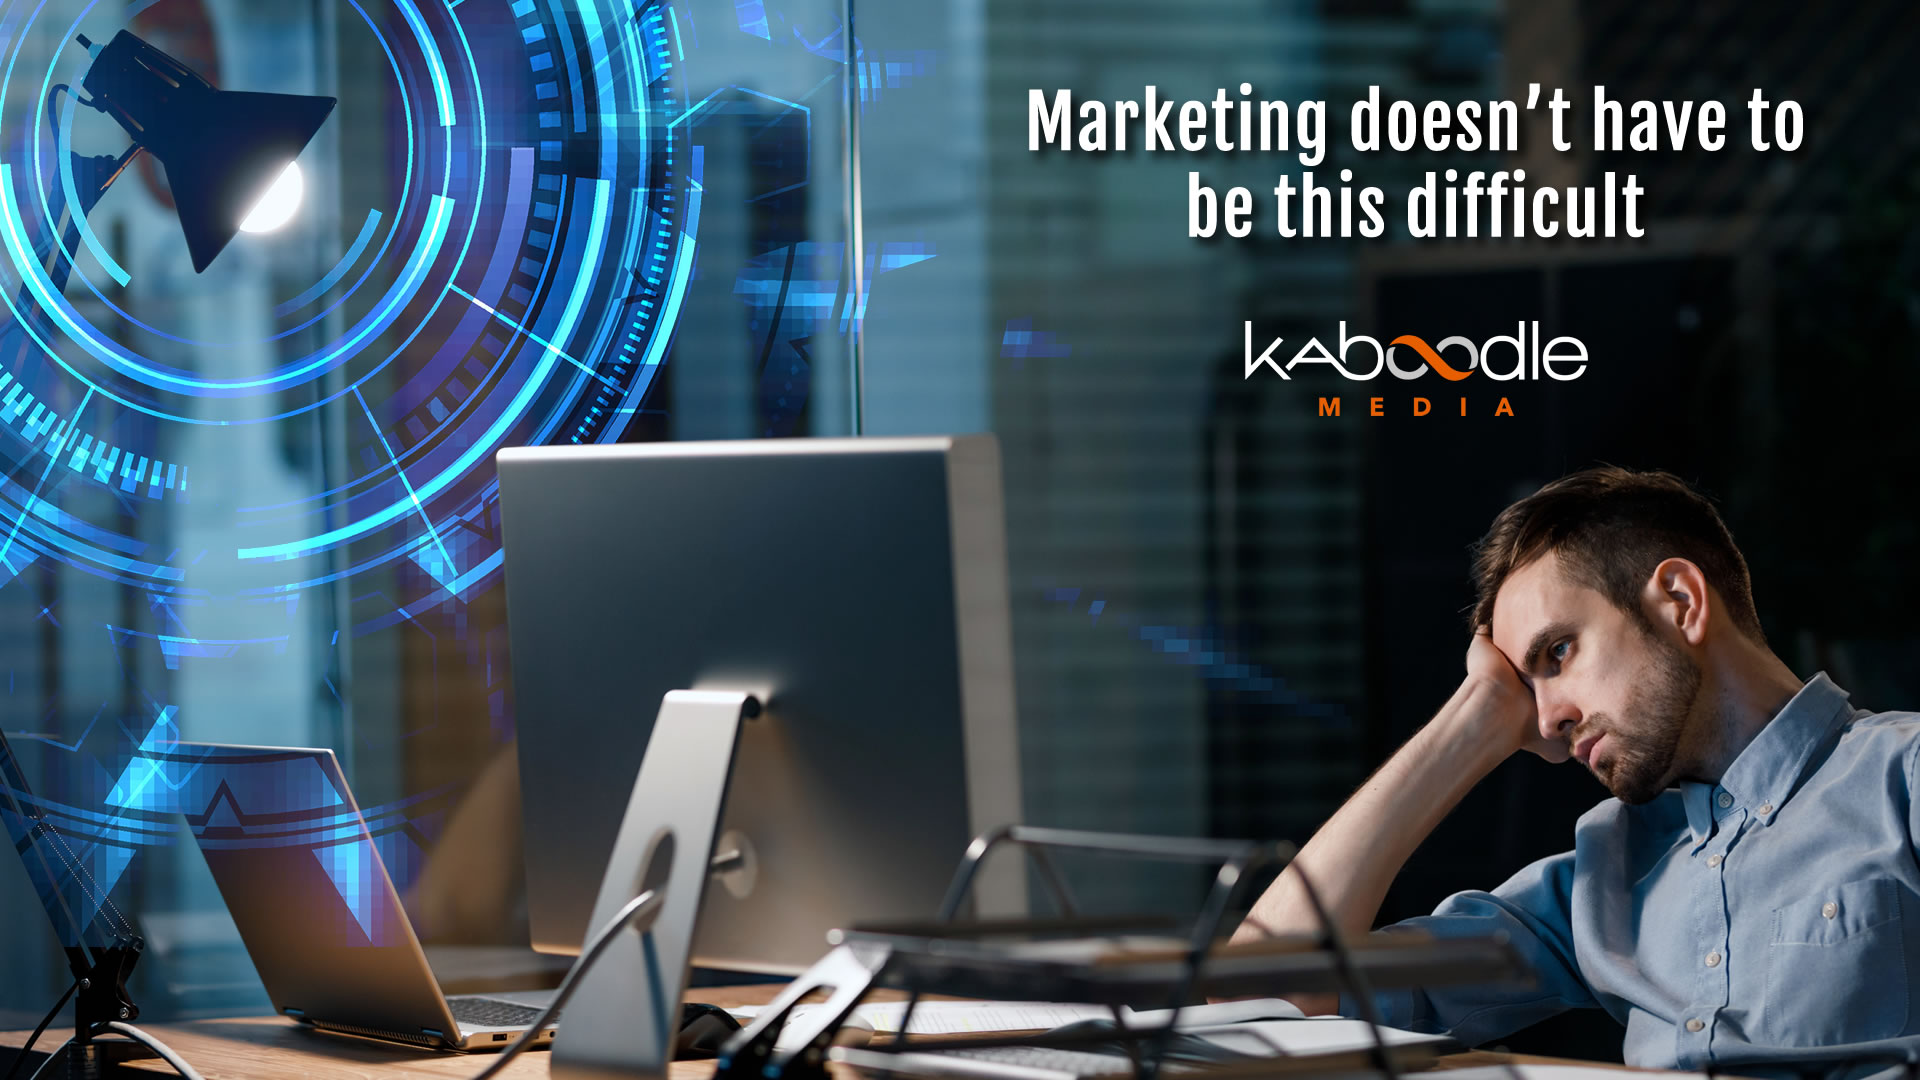 About Kaboodle Media